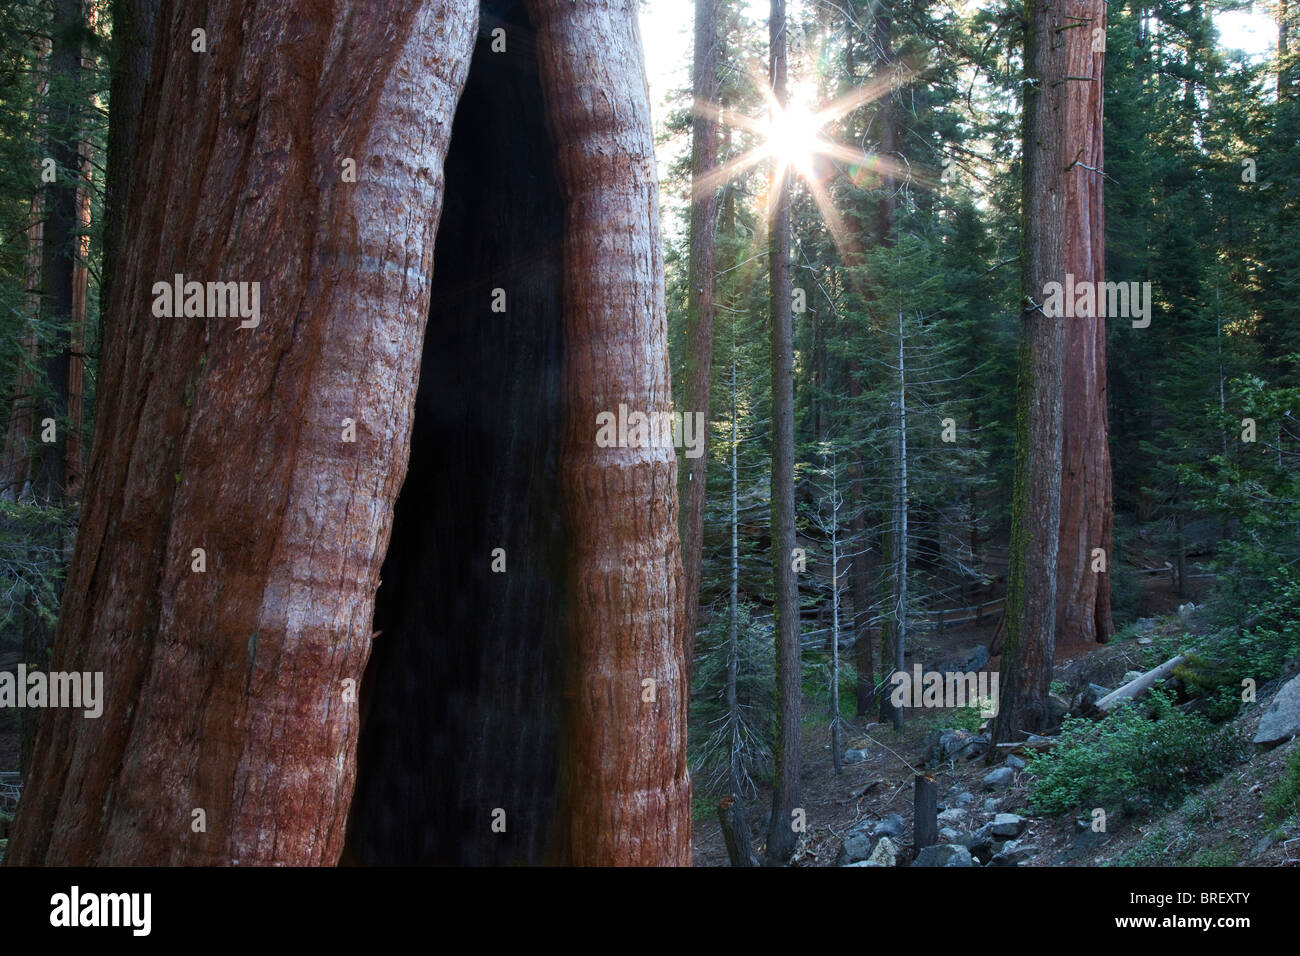 Burned out Giant Sequoia tree with sunburst in Grant Gove. Kings Canyon National Park, California - Stock Image